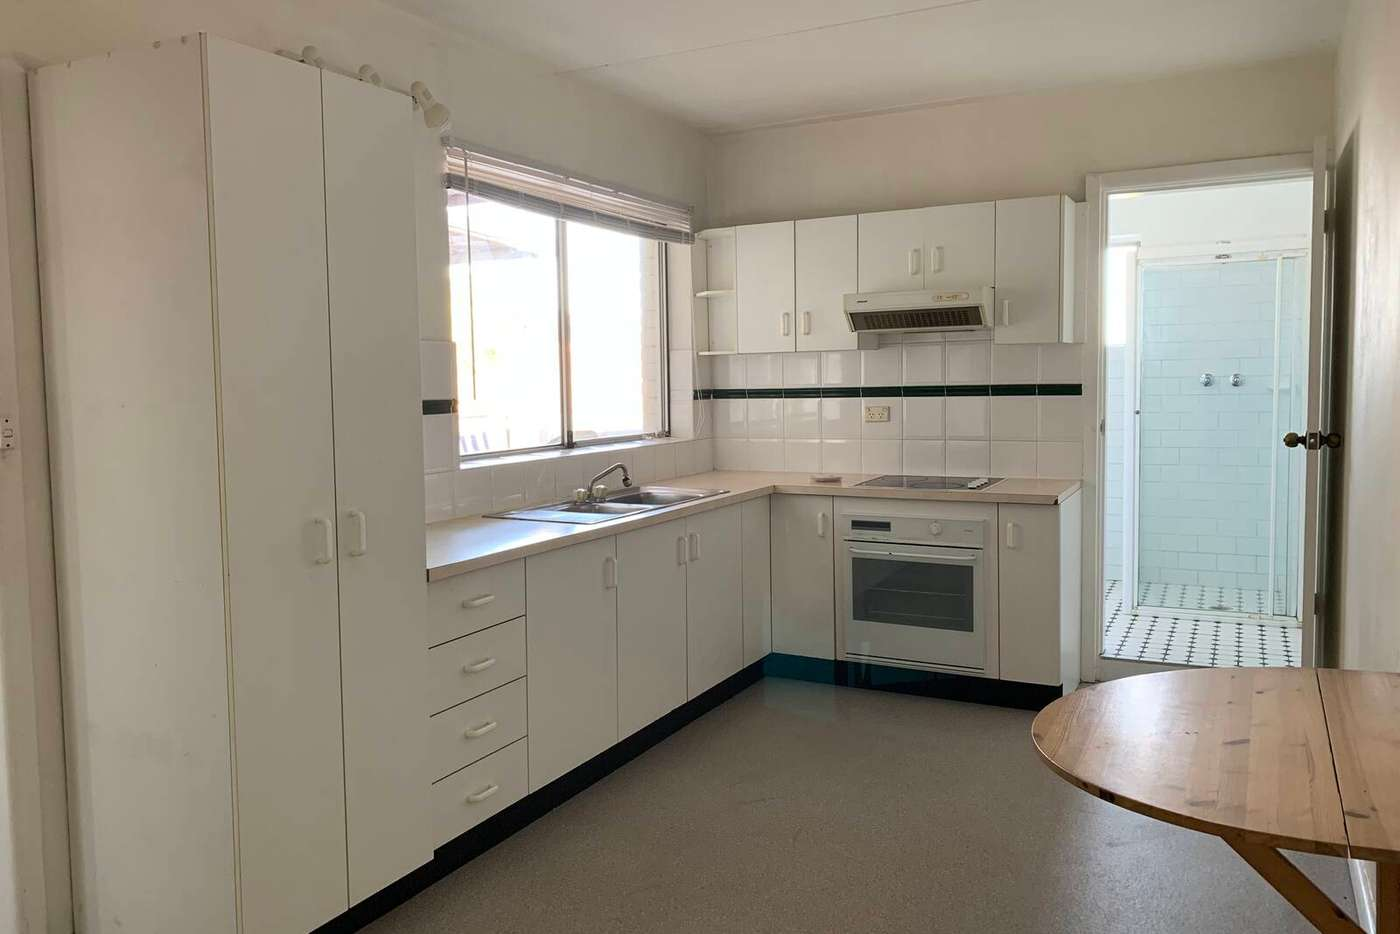 Main view of Homely apartment listing, 23B Albion Street, Waverley NSW 2024